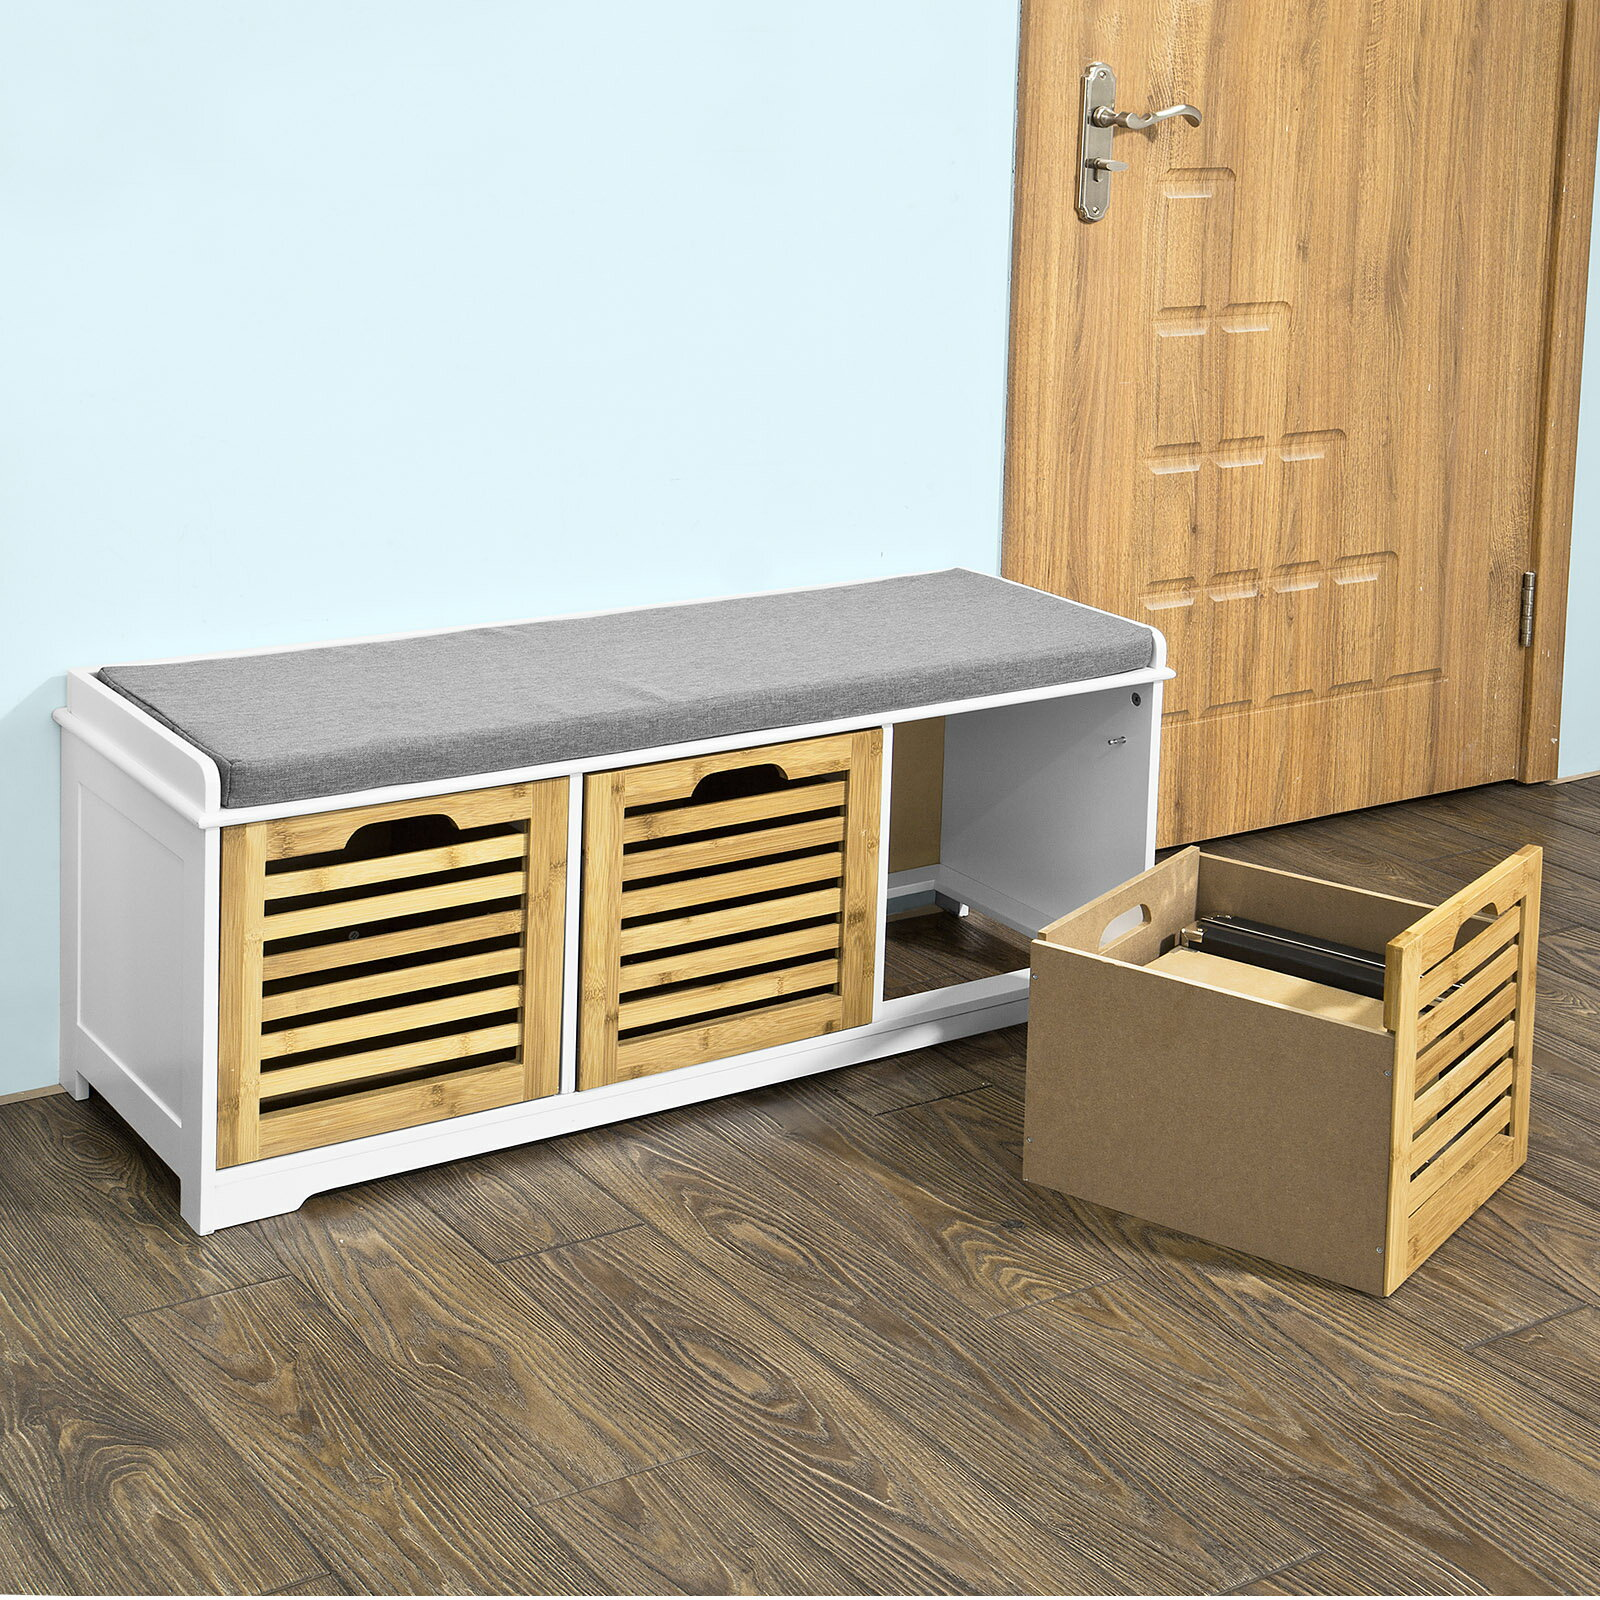 Haotian Fsr23 Wn Storage Bench With 3 Crates Shoe Cabinet